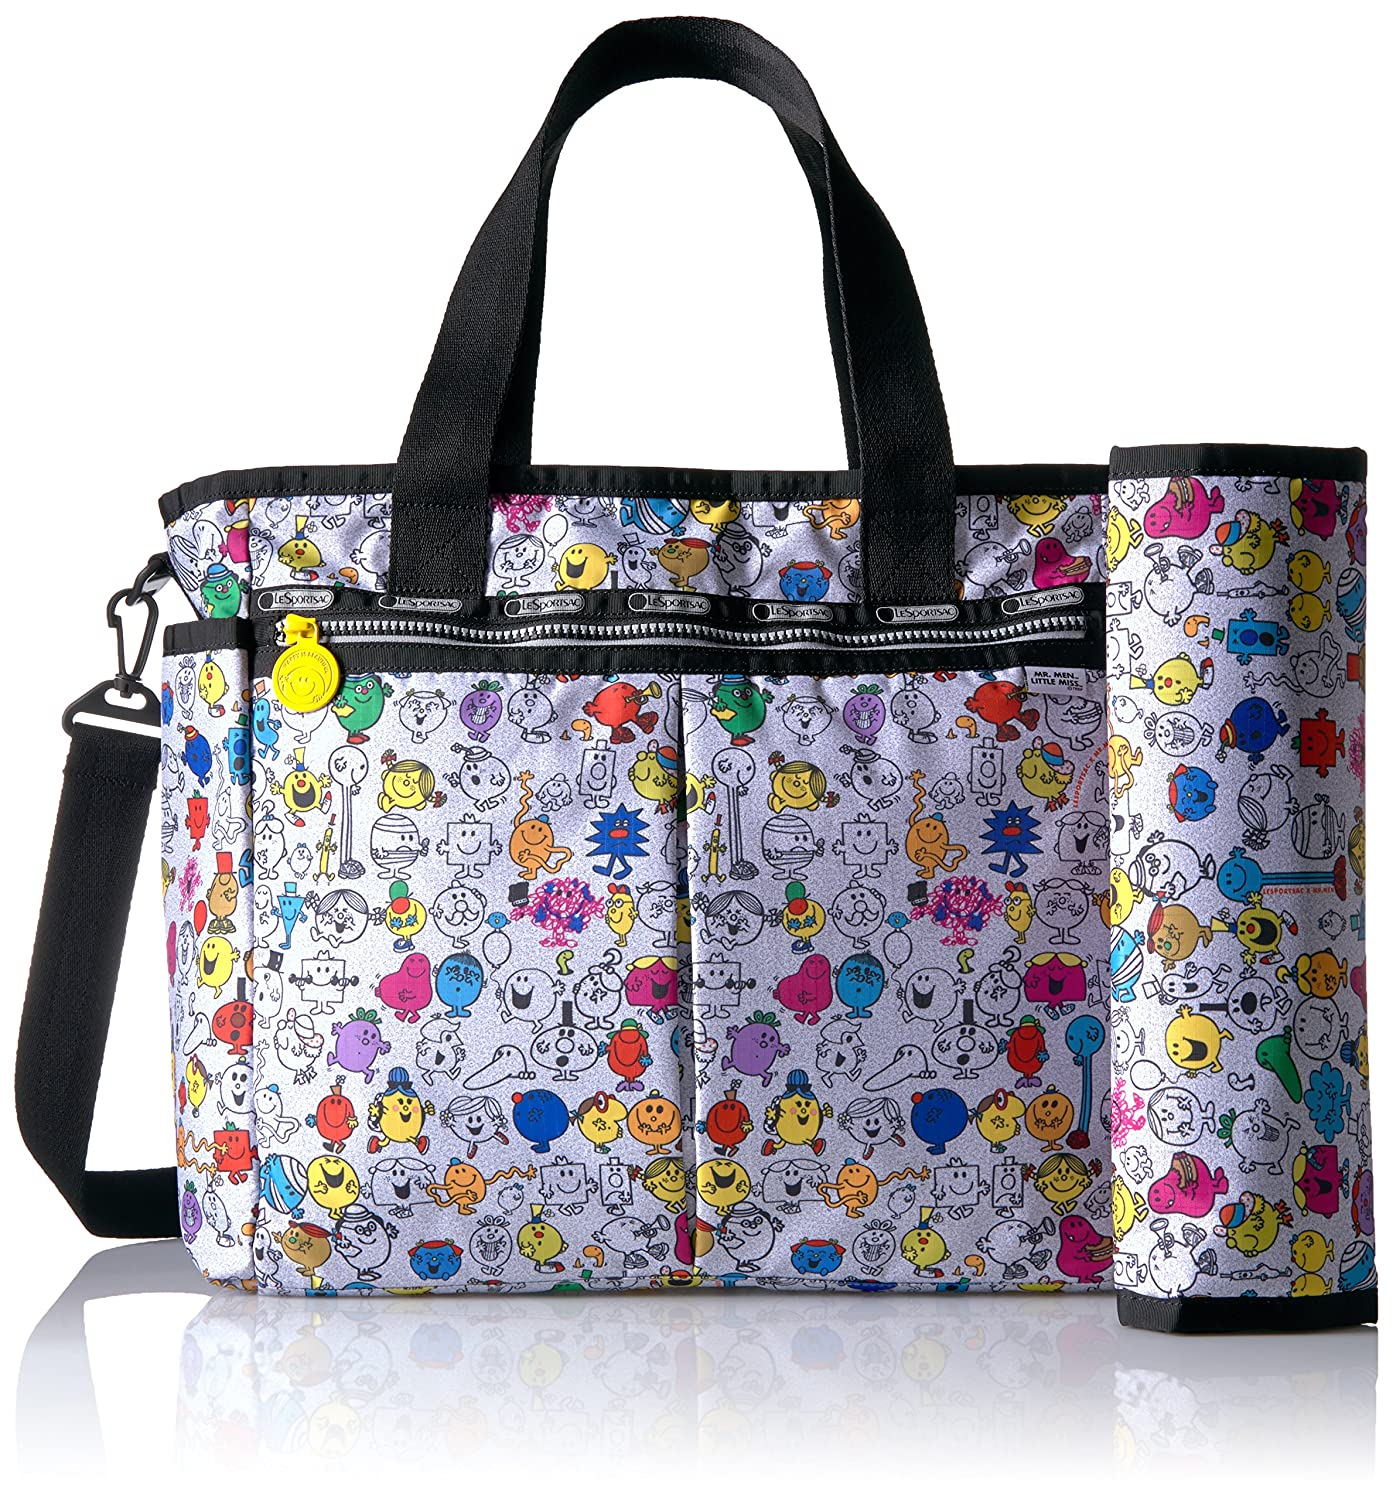 d0e84d414 Lesportsac X Mr. Men Little Miss Ryan Baby Tote Carry On Bag, MR. Men and  Little Miss, One Size: Amazon.ca: Luggage & Bags